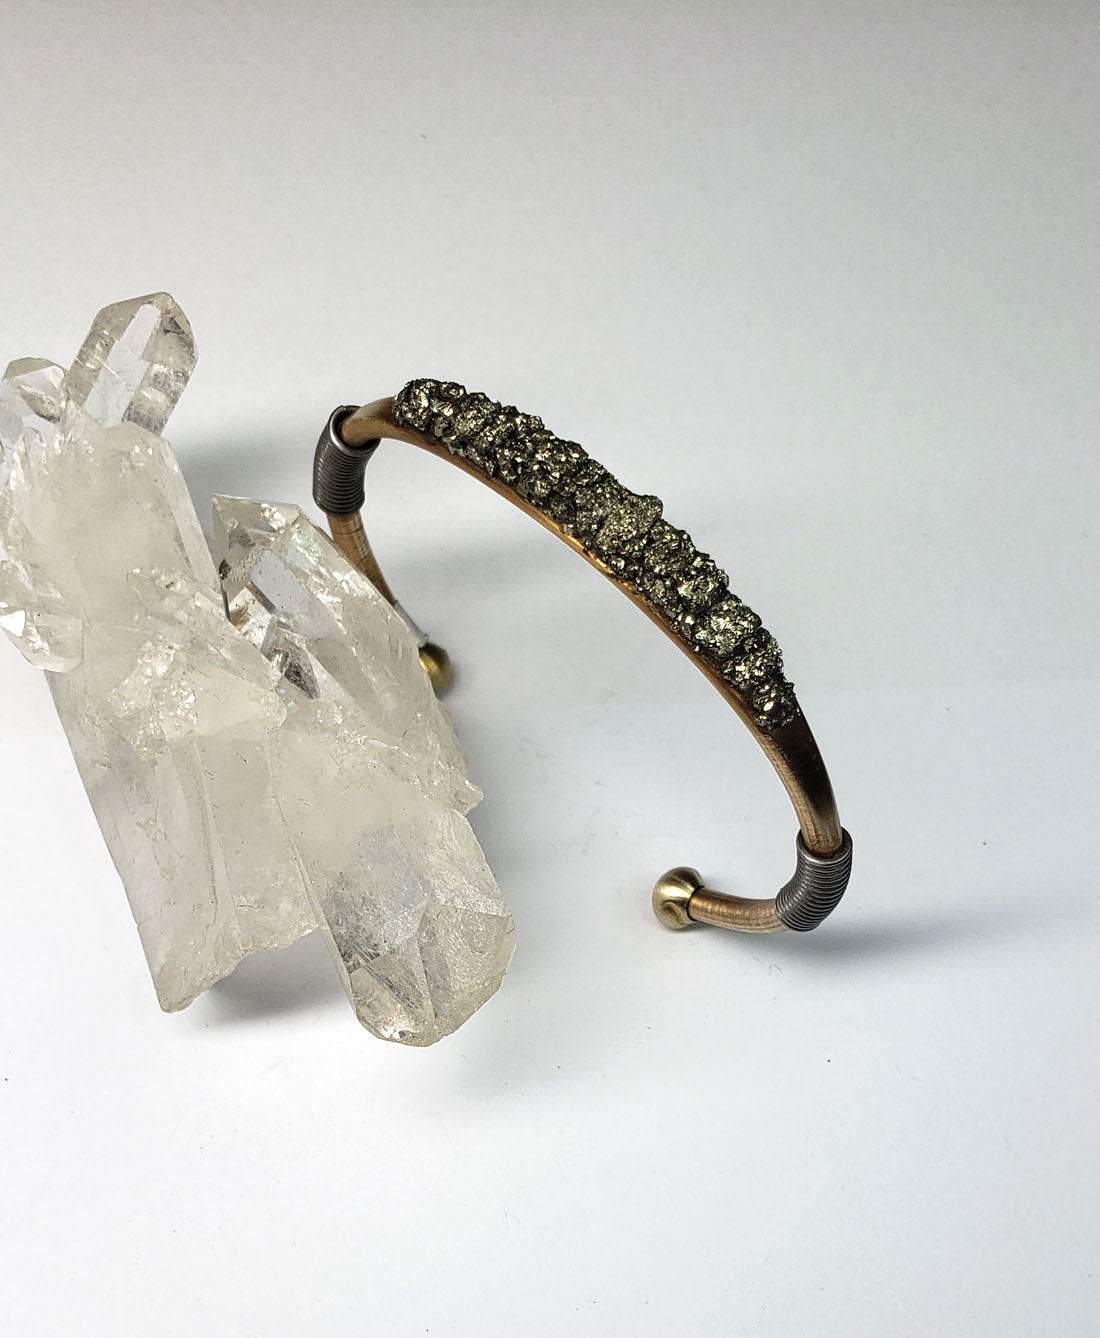 Marly Moretti Brass Cuff with Silver Accents and Pyrite Stones - Wanderlustre